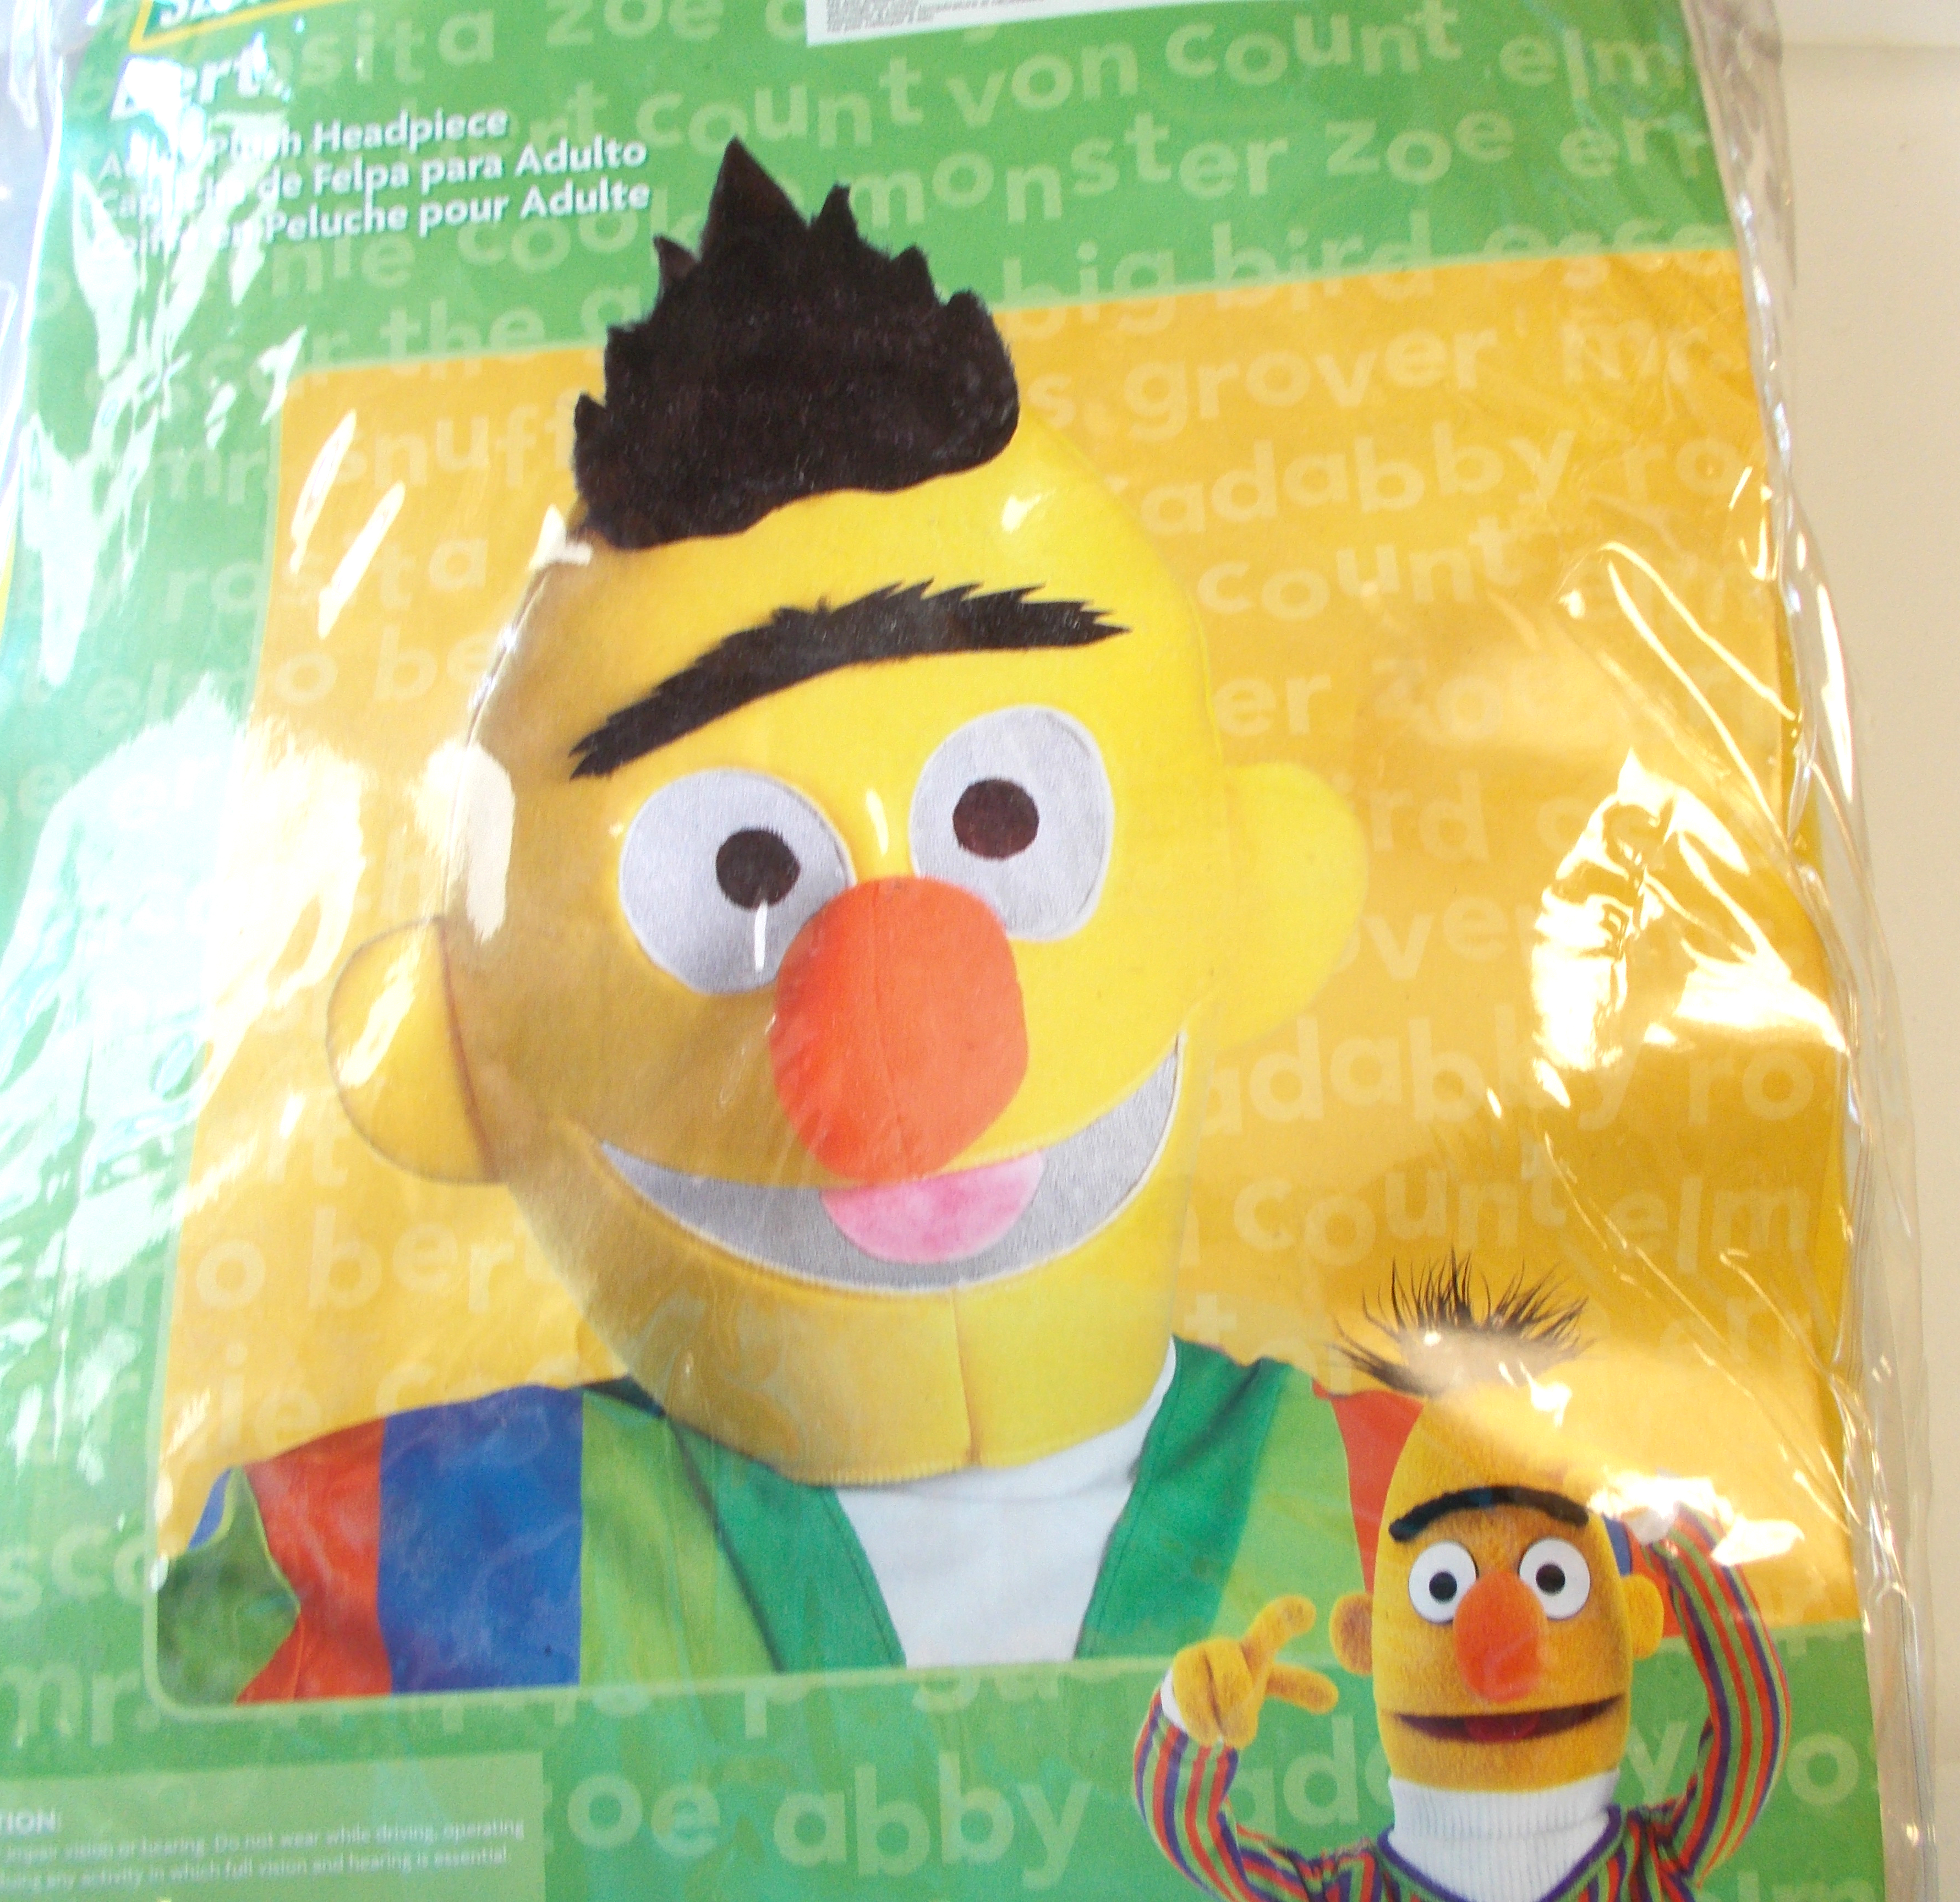 Sesame Street Bert Adult Plush Costume Headpiece OSFM NIP